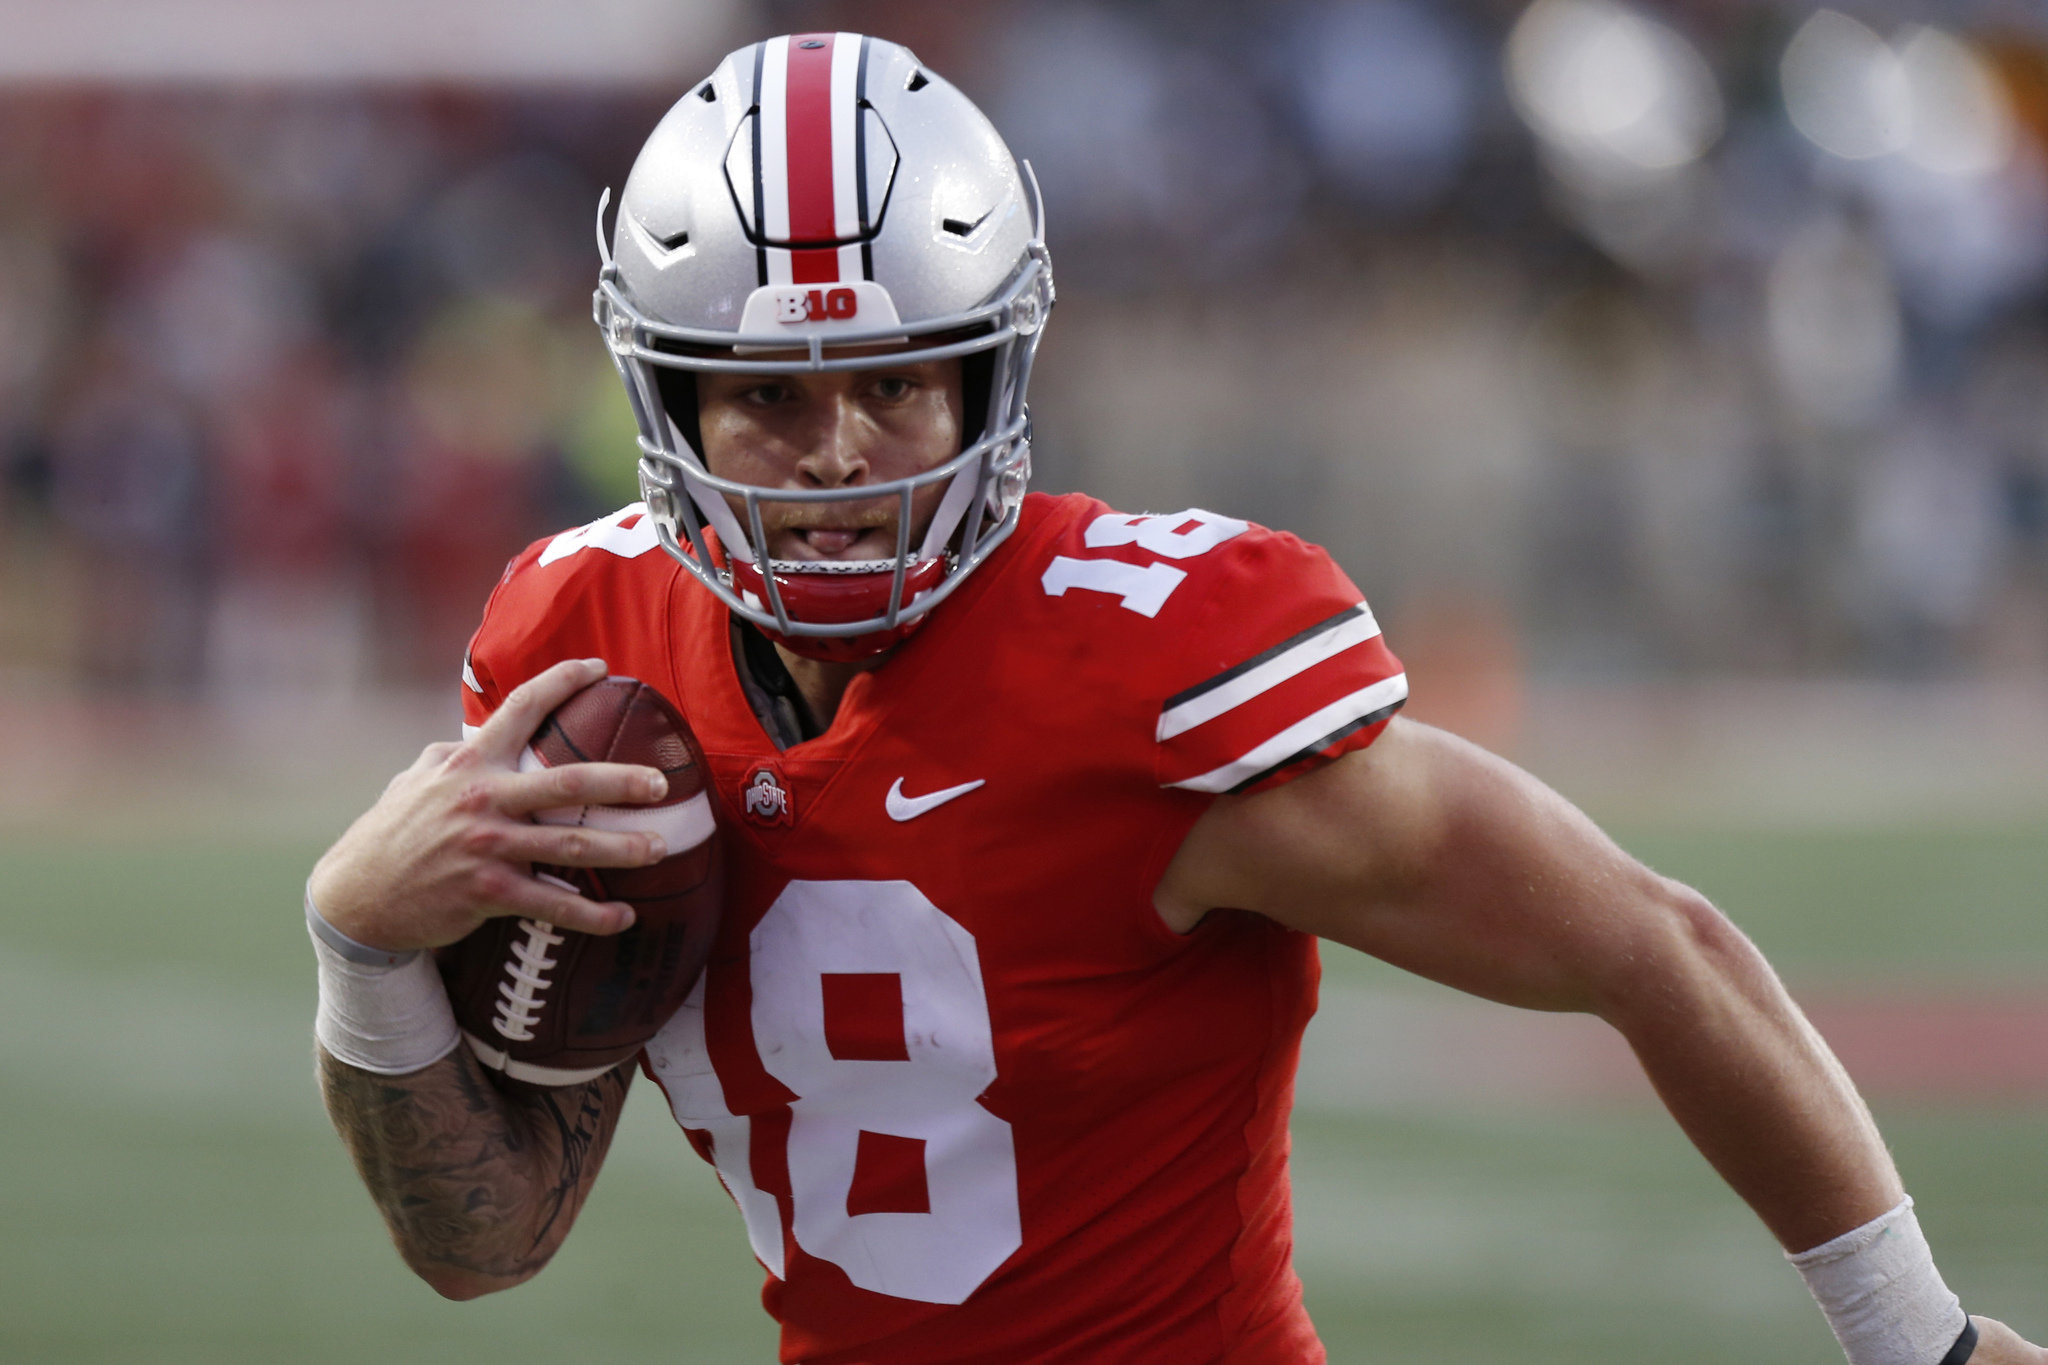 Did Tate Martell make the right decision to leave Ohio State for Miami?